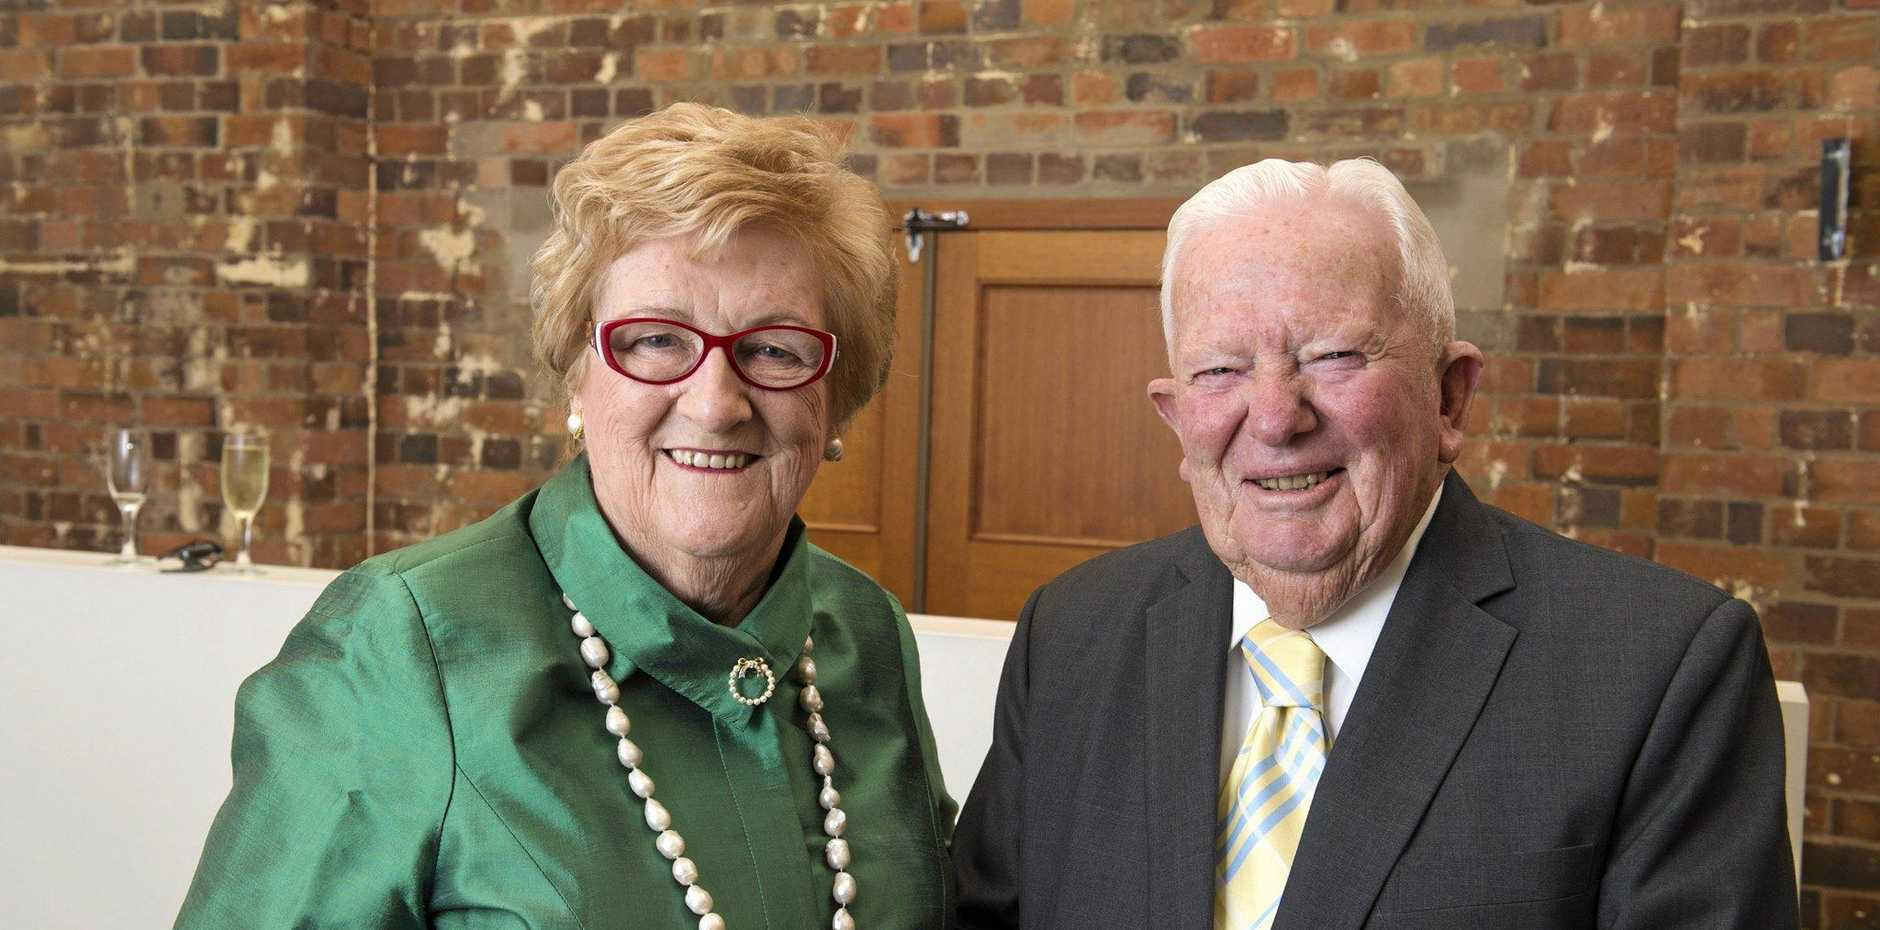 Toowoomba Chamber of Commerce Secrets of My Success series with Henry and Mary Wagner at Empire Theatres, Friday, April 15, 2016.